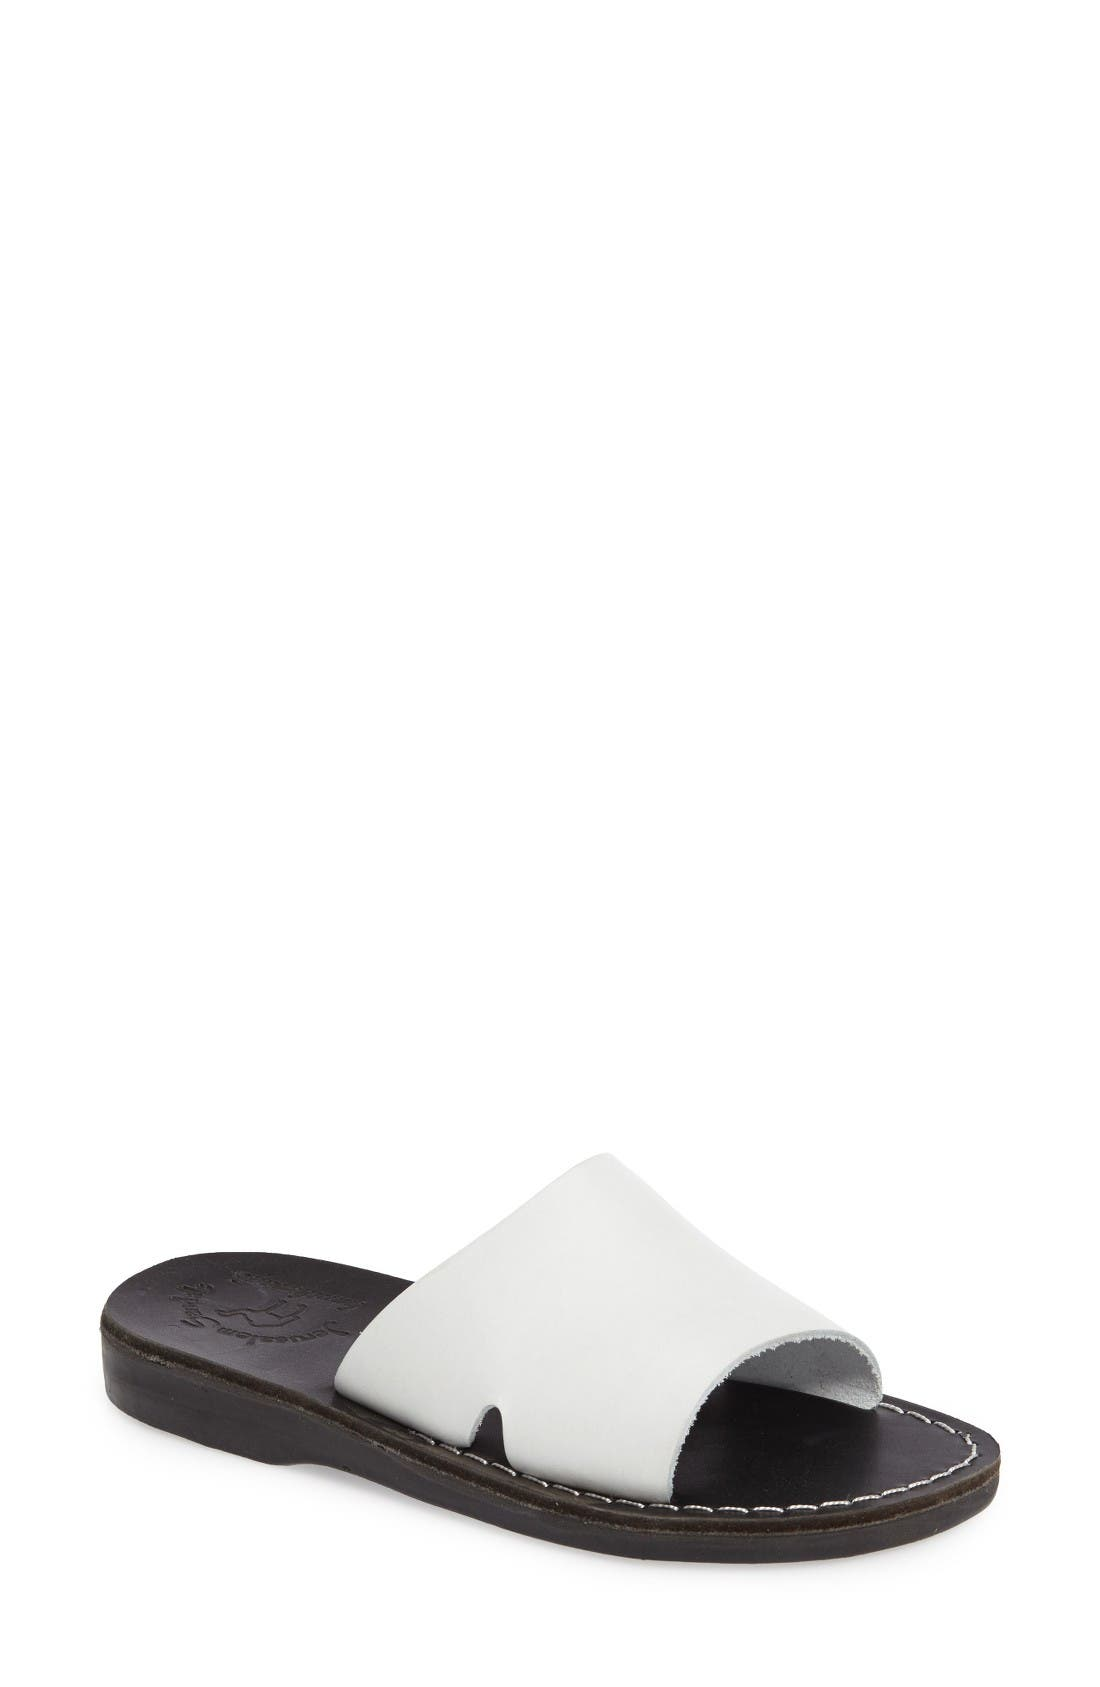 Bashan Open Toe Slide,                         Main,                         color, Black/ White Leather